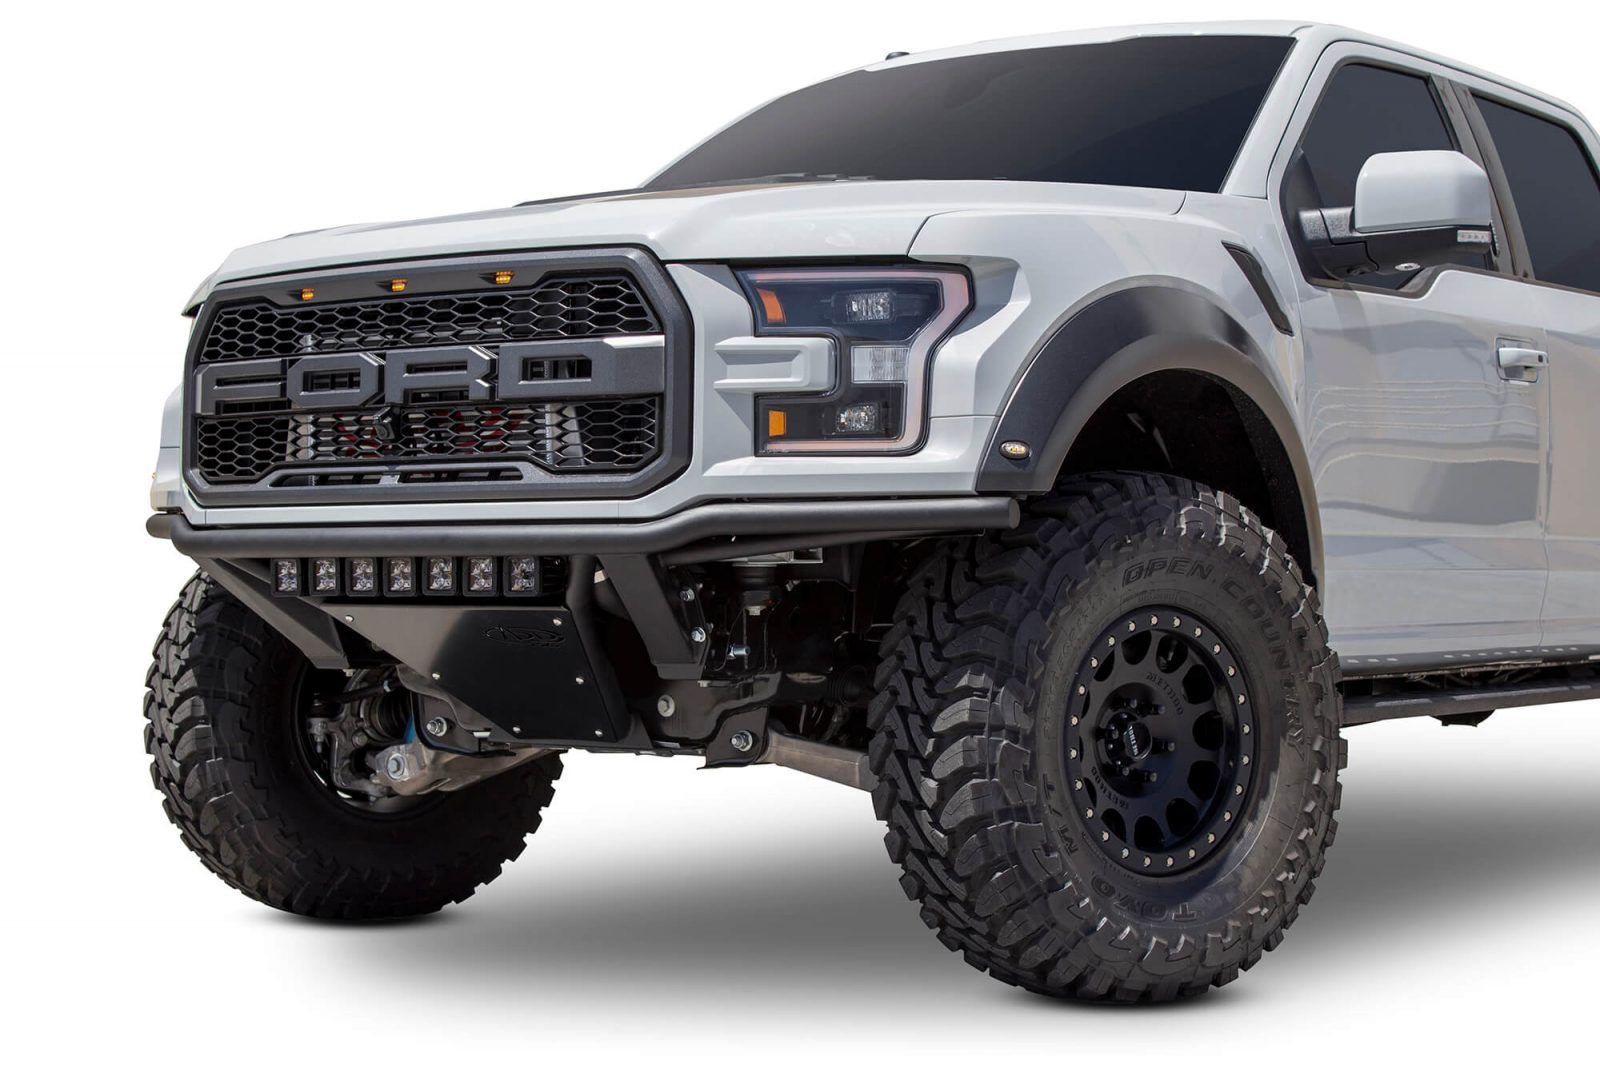 ADD PRO Front Bumper | Ford raptor, Ford trucks, Lifted ...